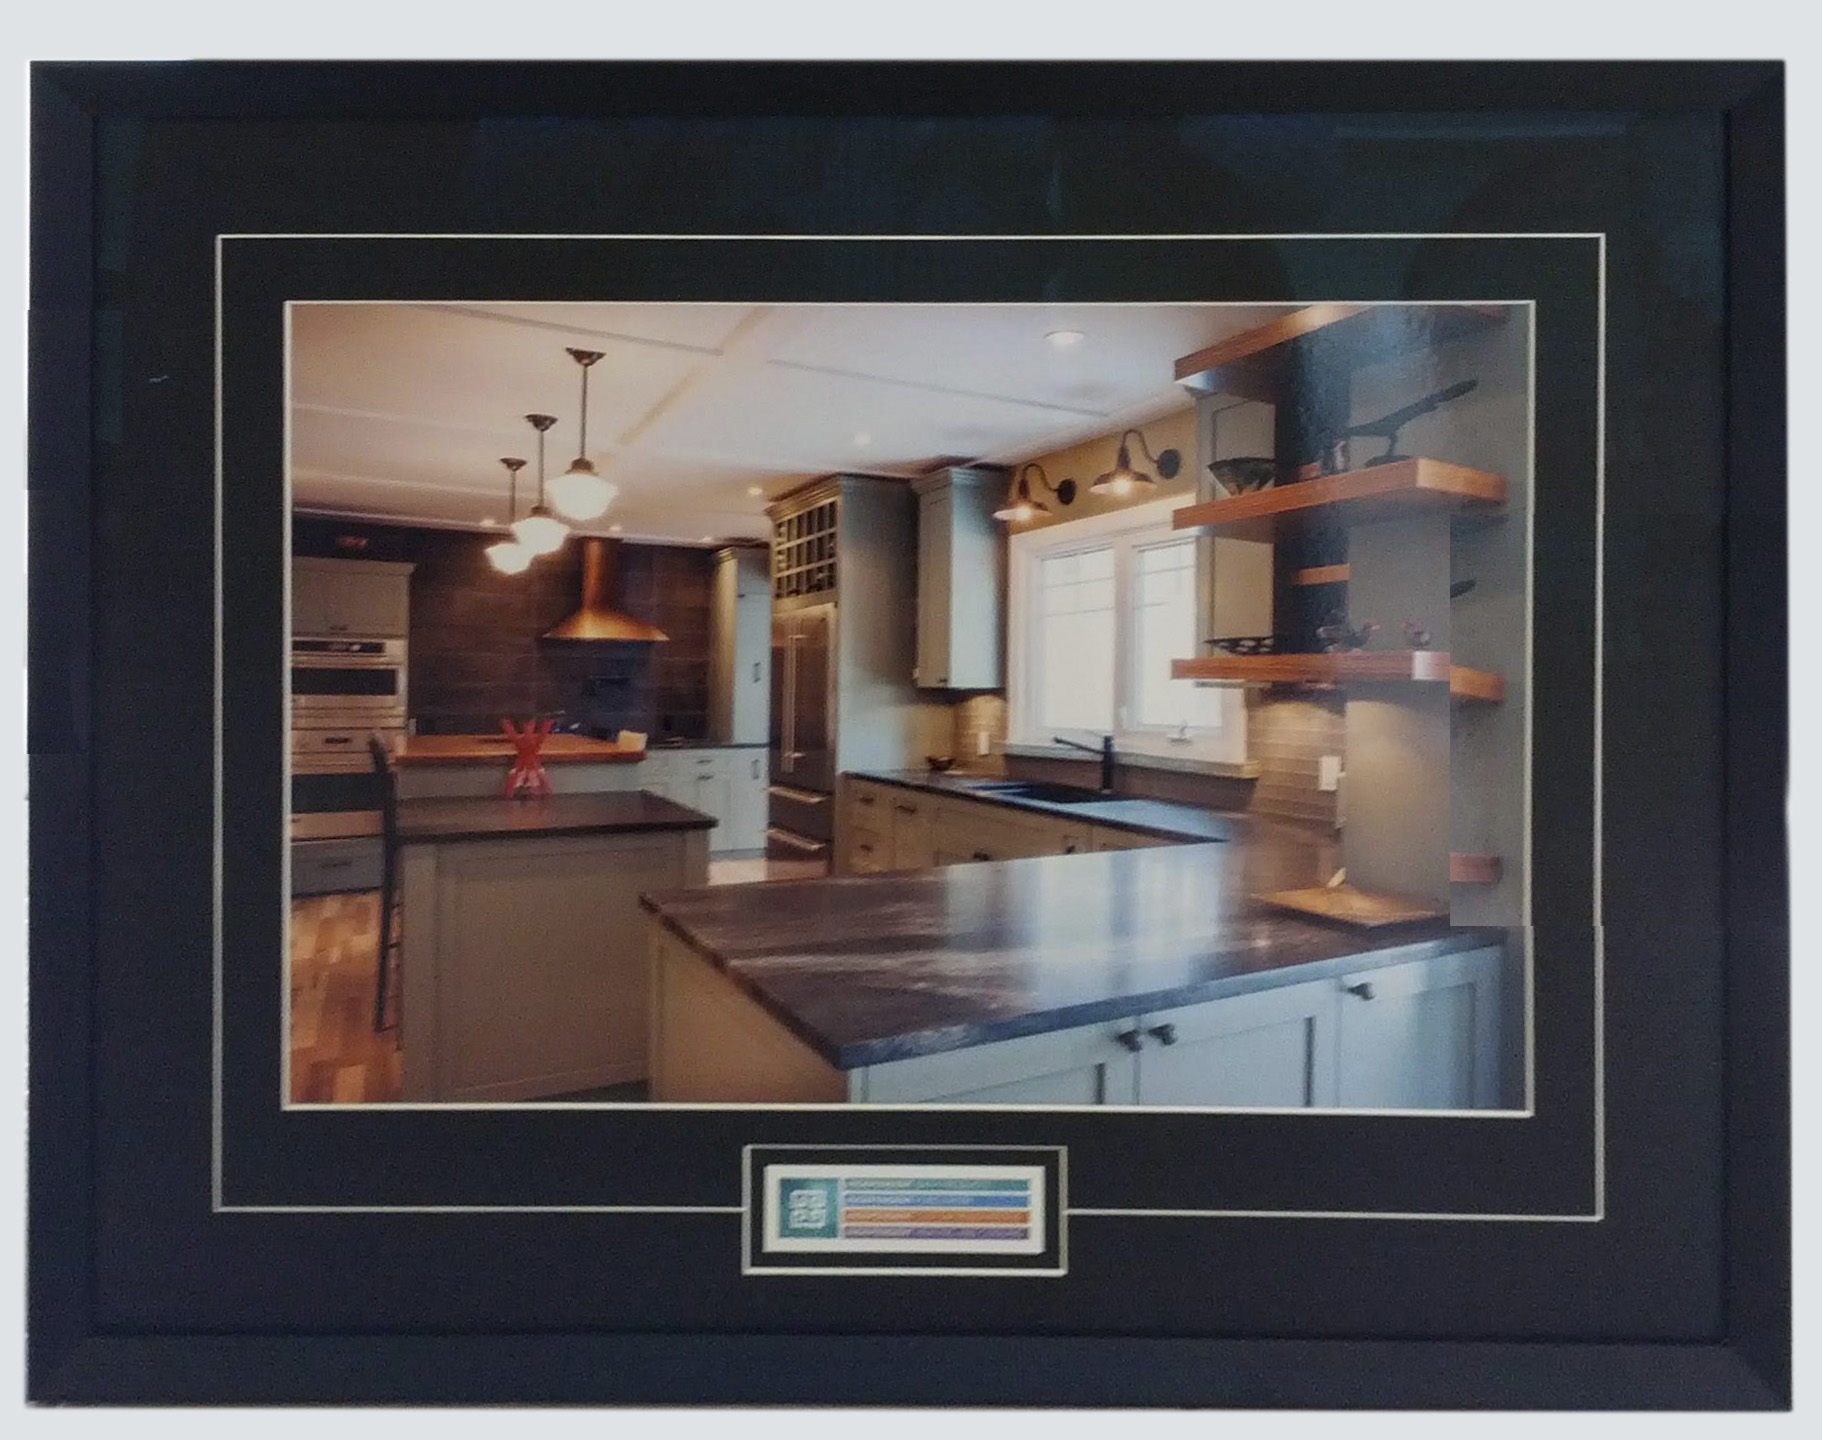 Framed and matted photograph of kitchen for custom renovations company's office